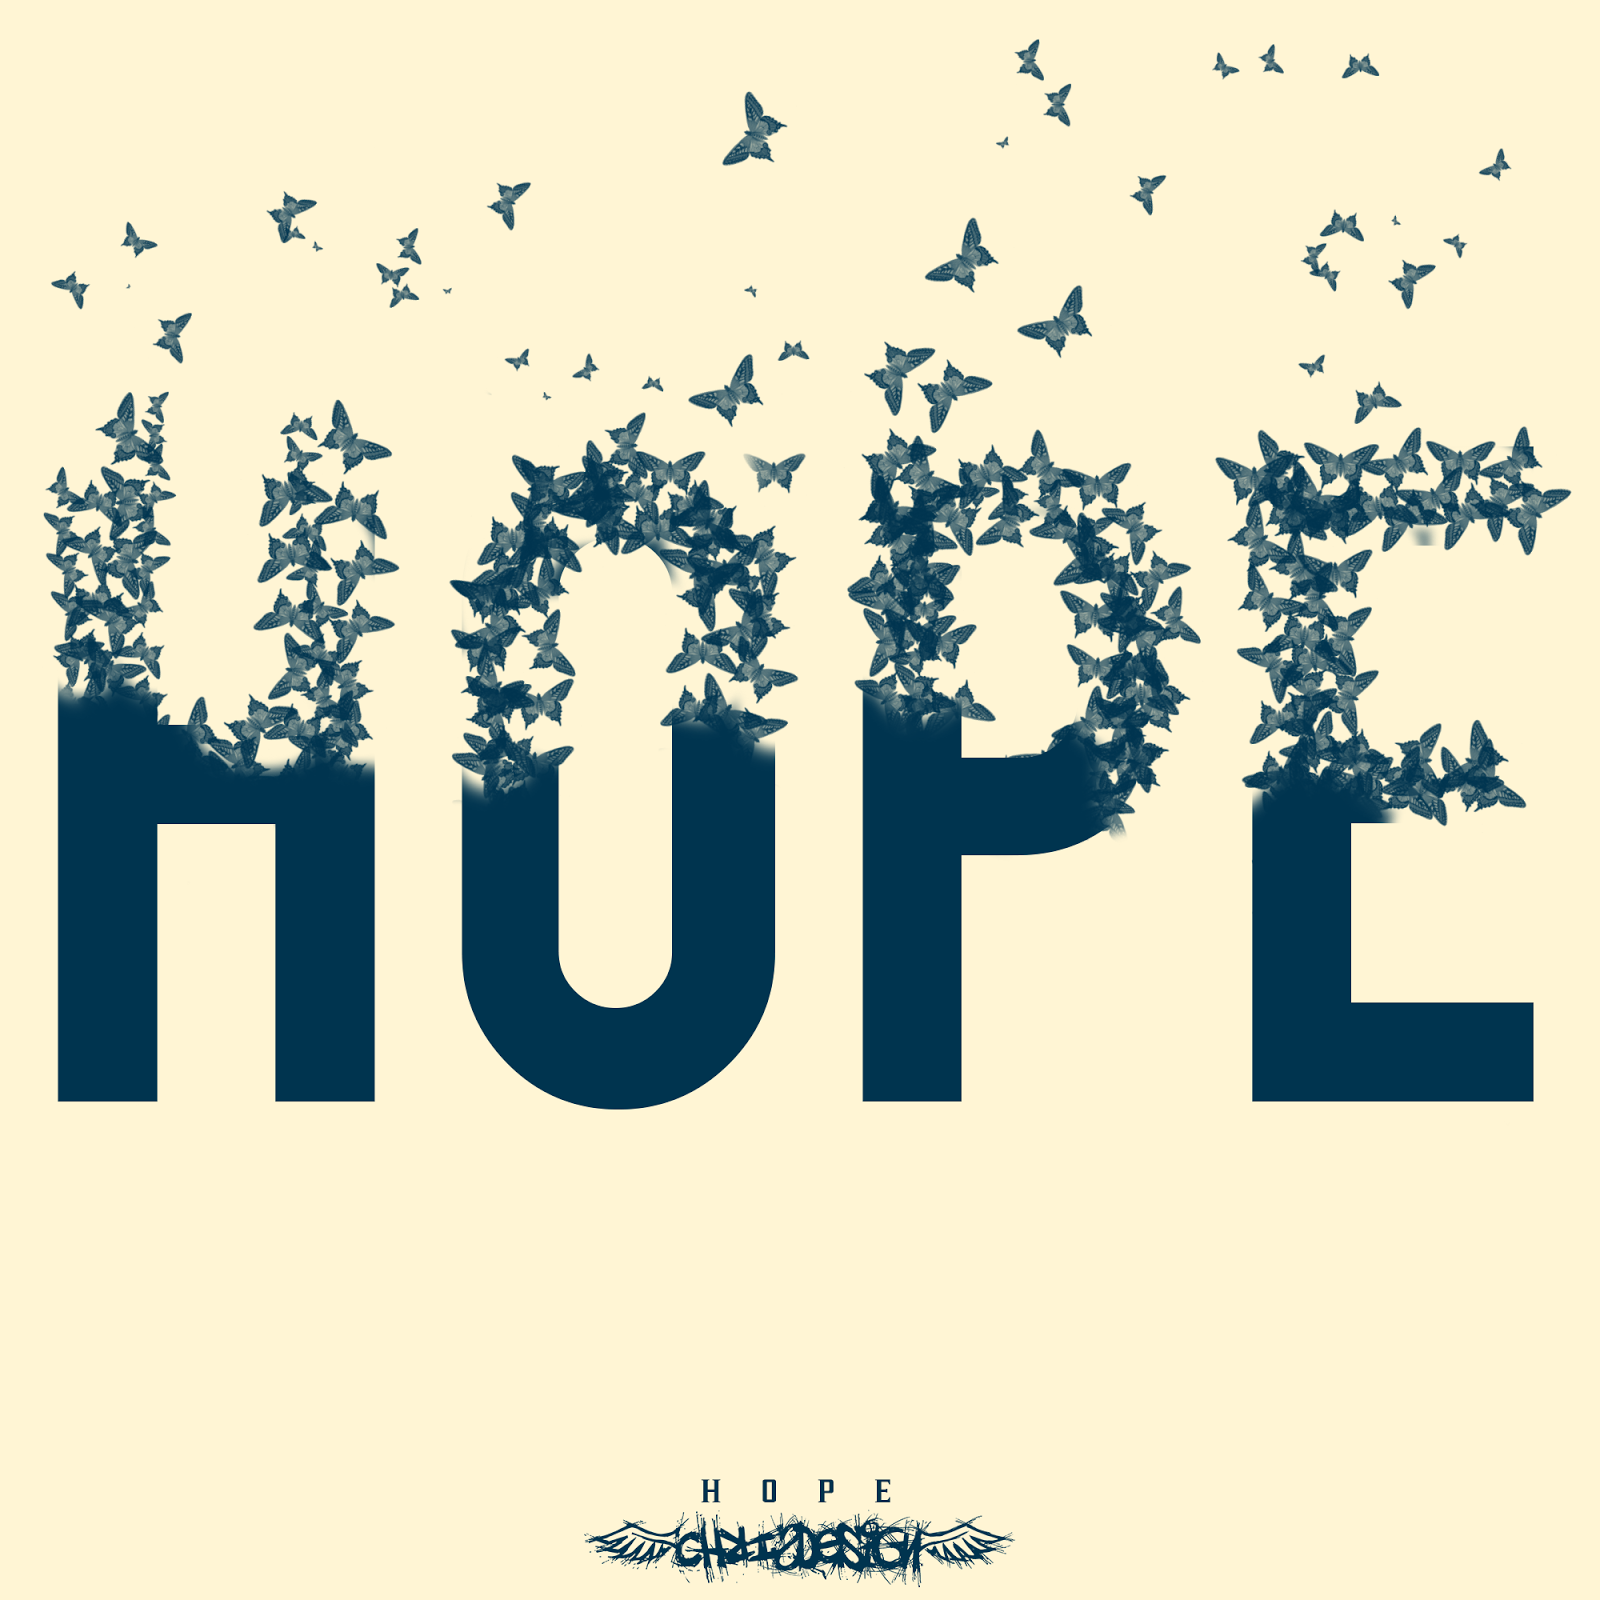 Hope symbol google search crystal apple pinterest hope hope symbol google search buycottarizona Image collections